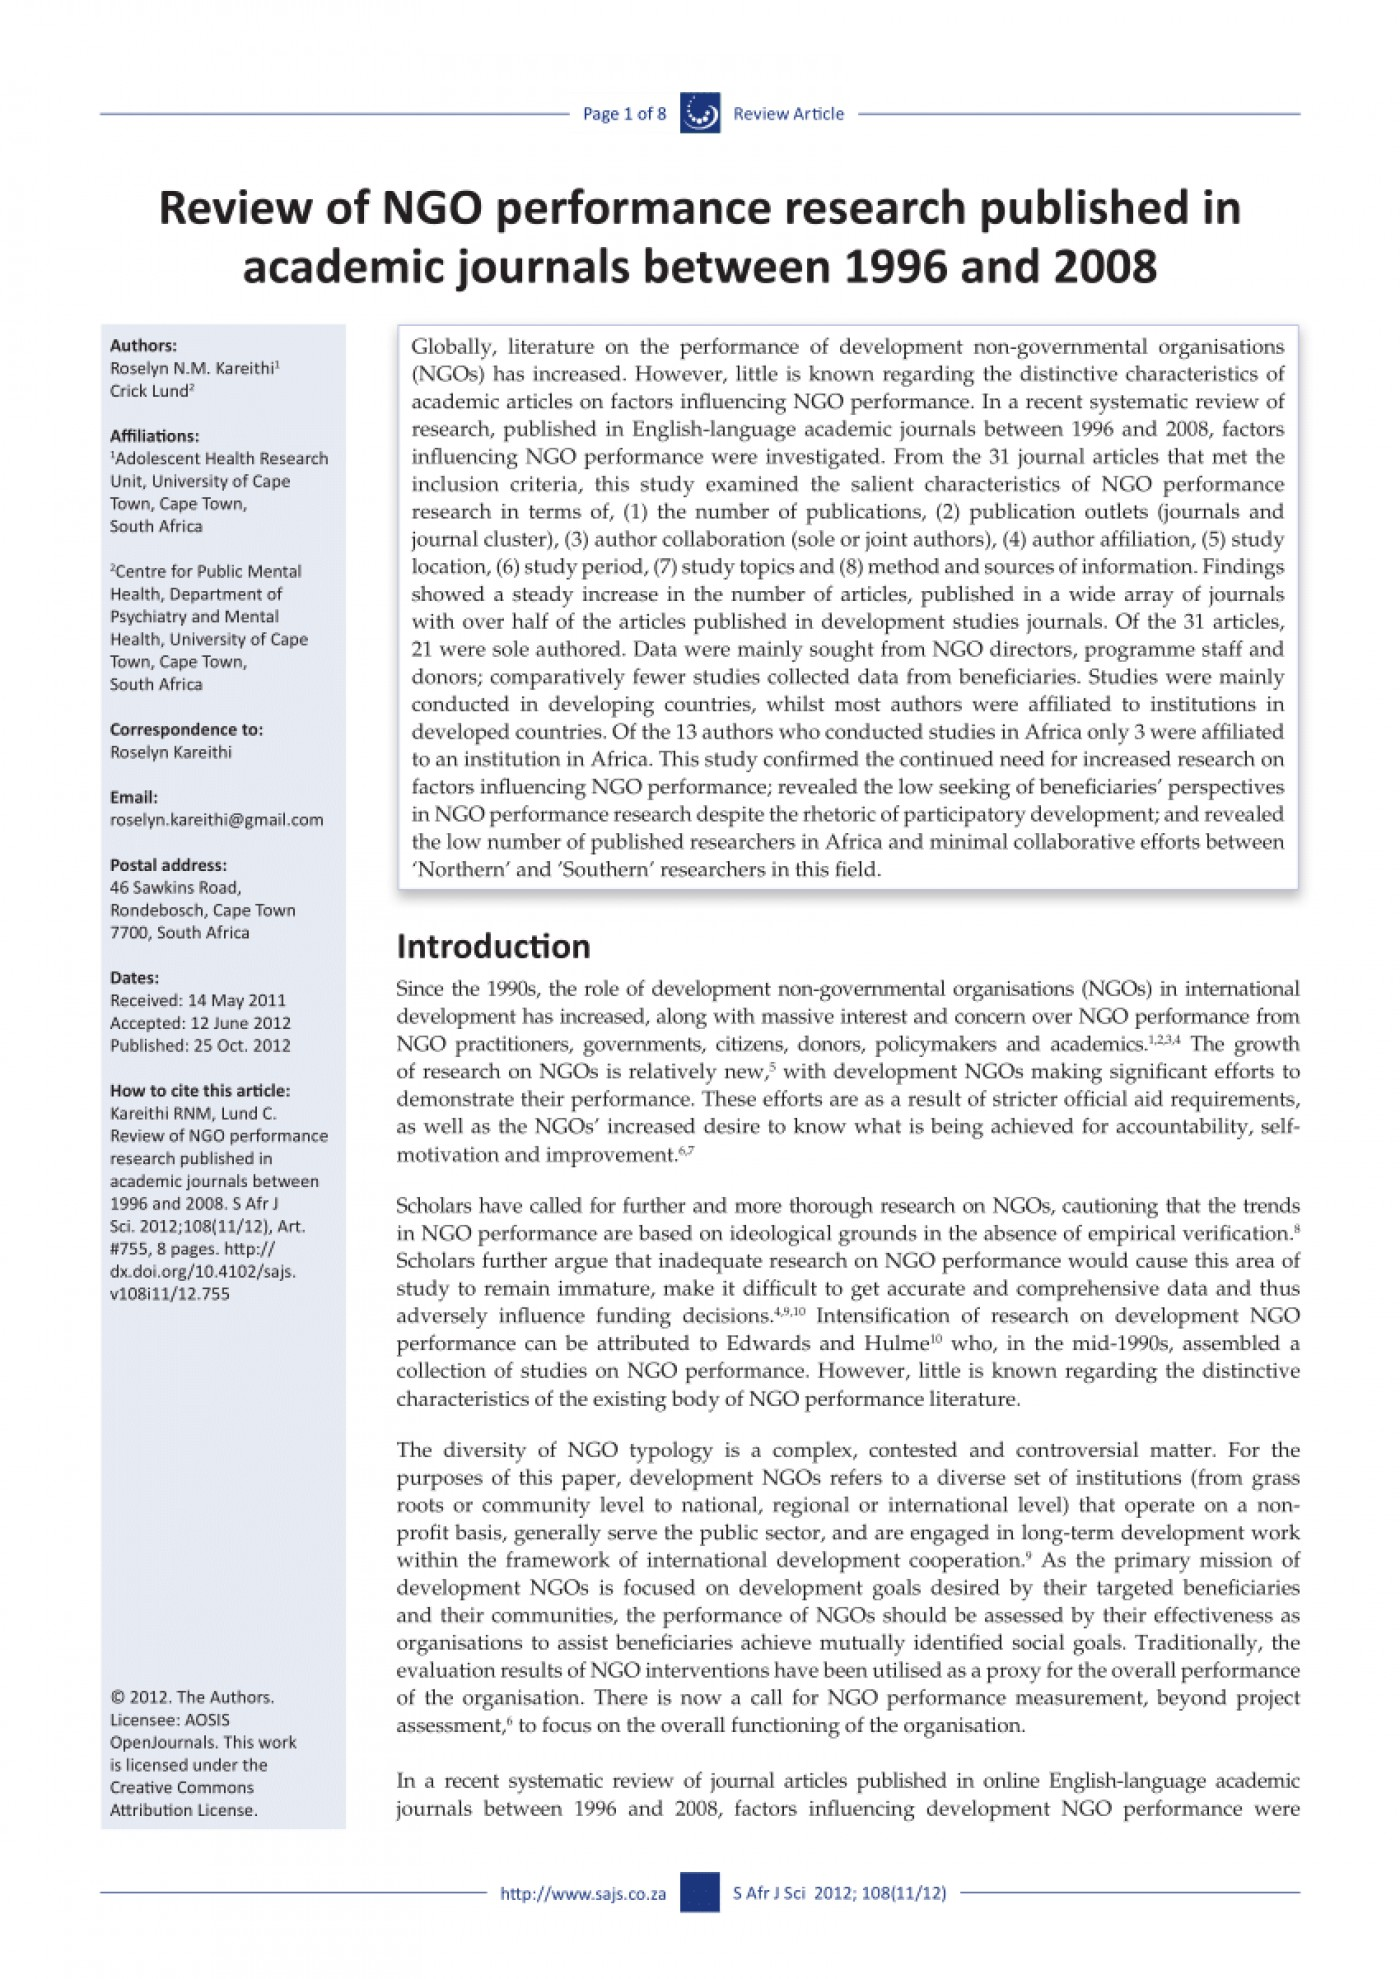 006 Research Paper Published Breathtaking About Bullying Papers In Artificial Intelligence Mathematics 1400